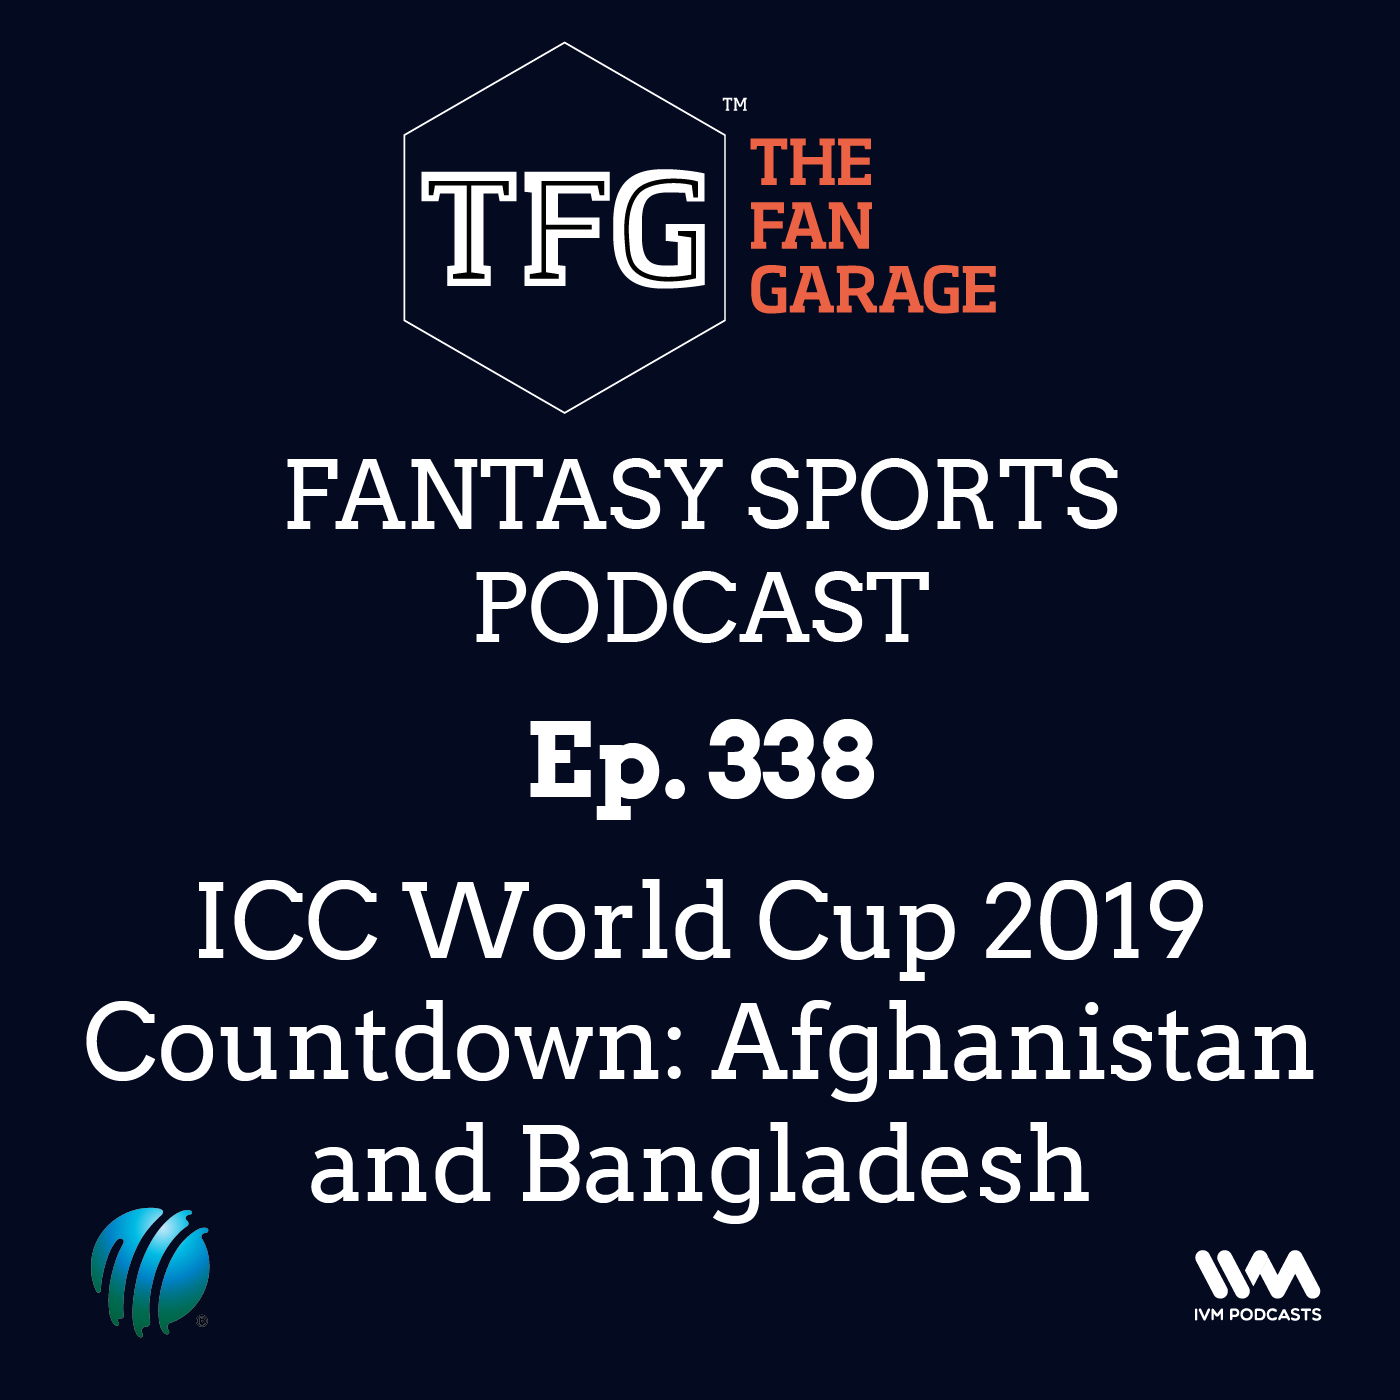 TFG Fantasy Sports Podcast Ep. 338: ICC World Cup 2019 Countdown: Afghanistan and Bangladesh